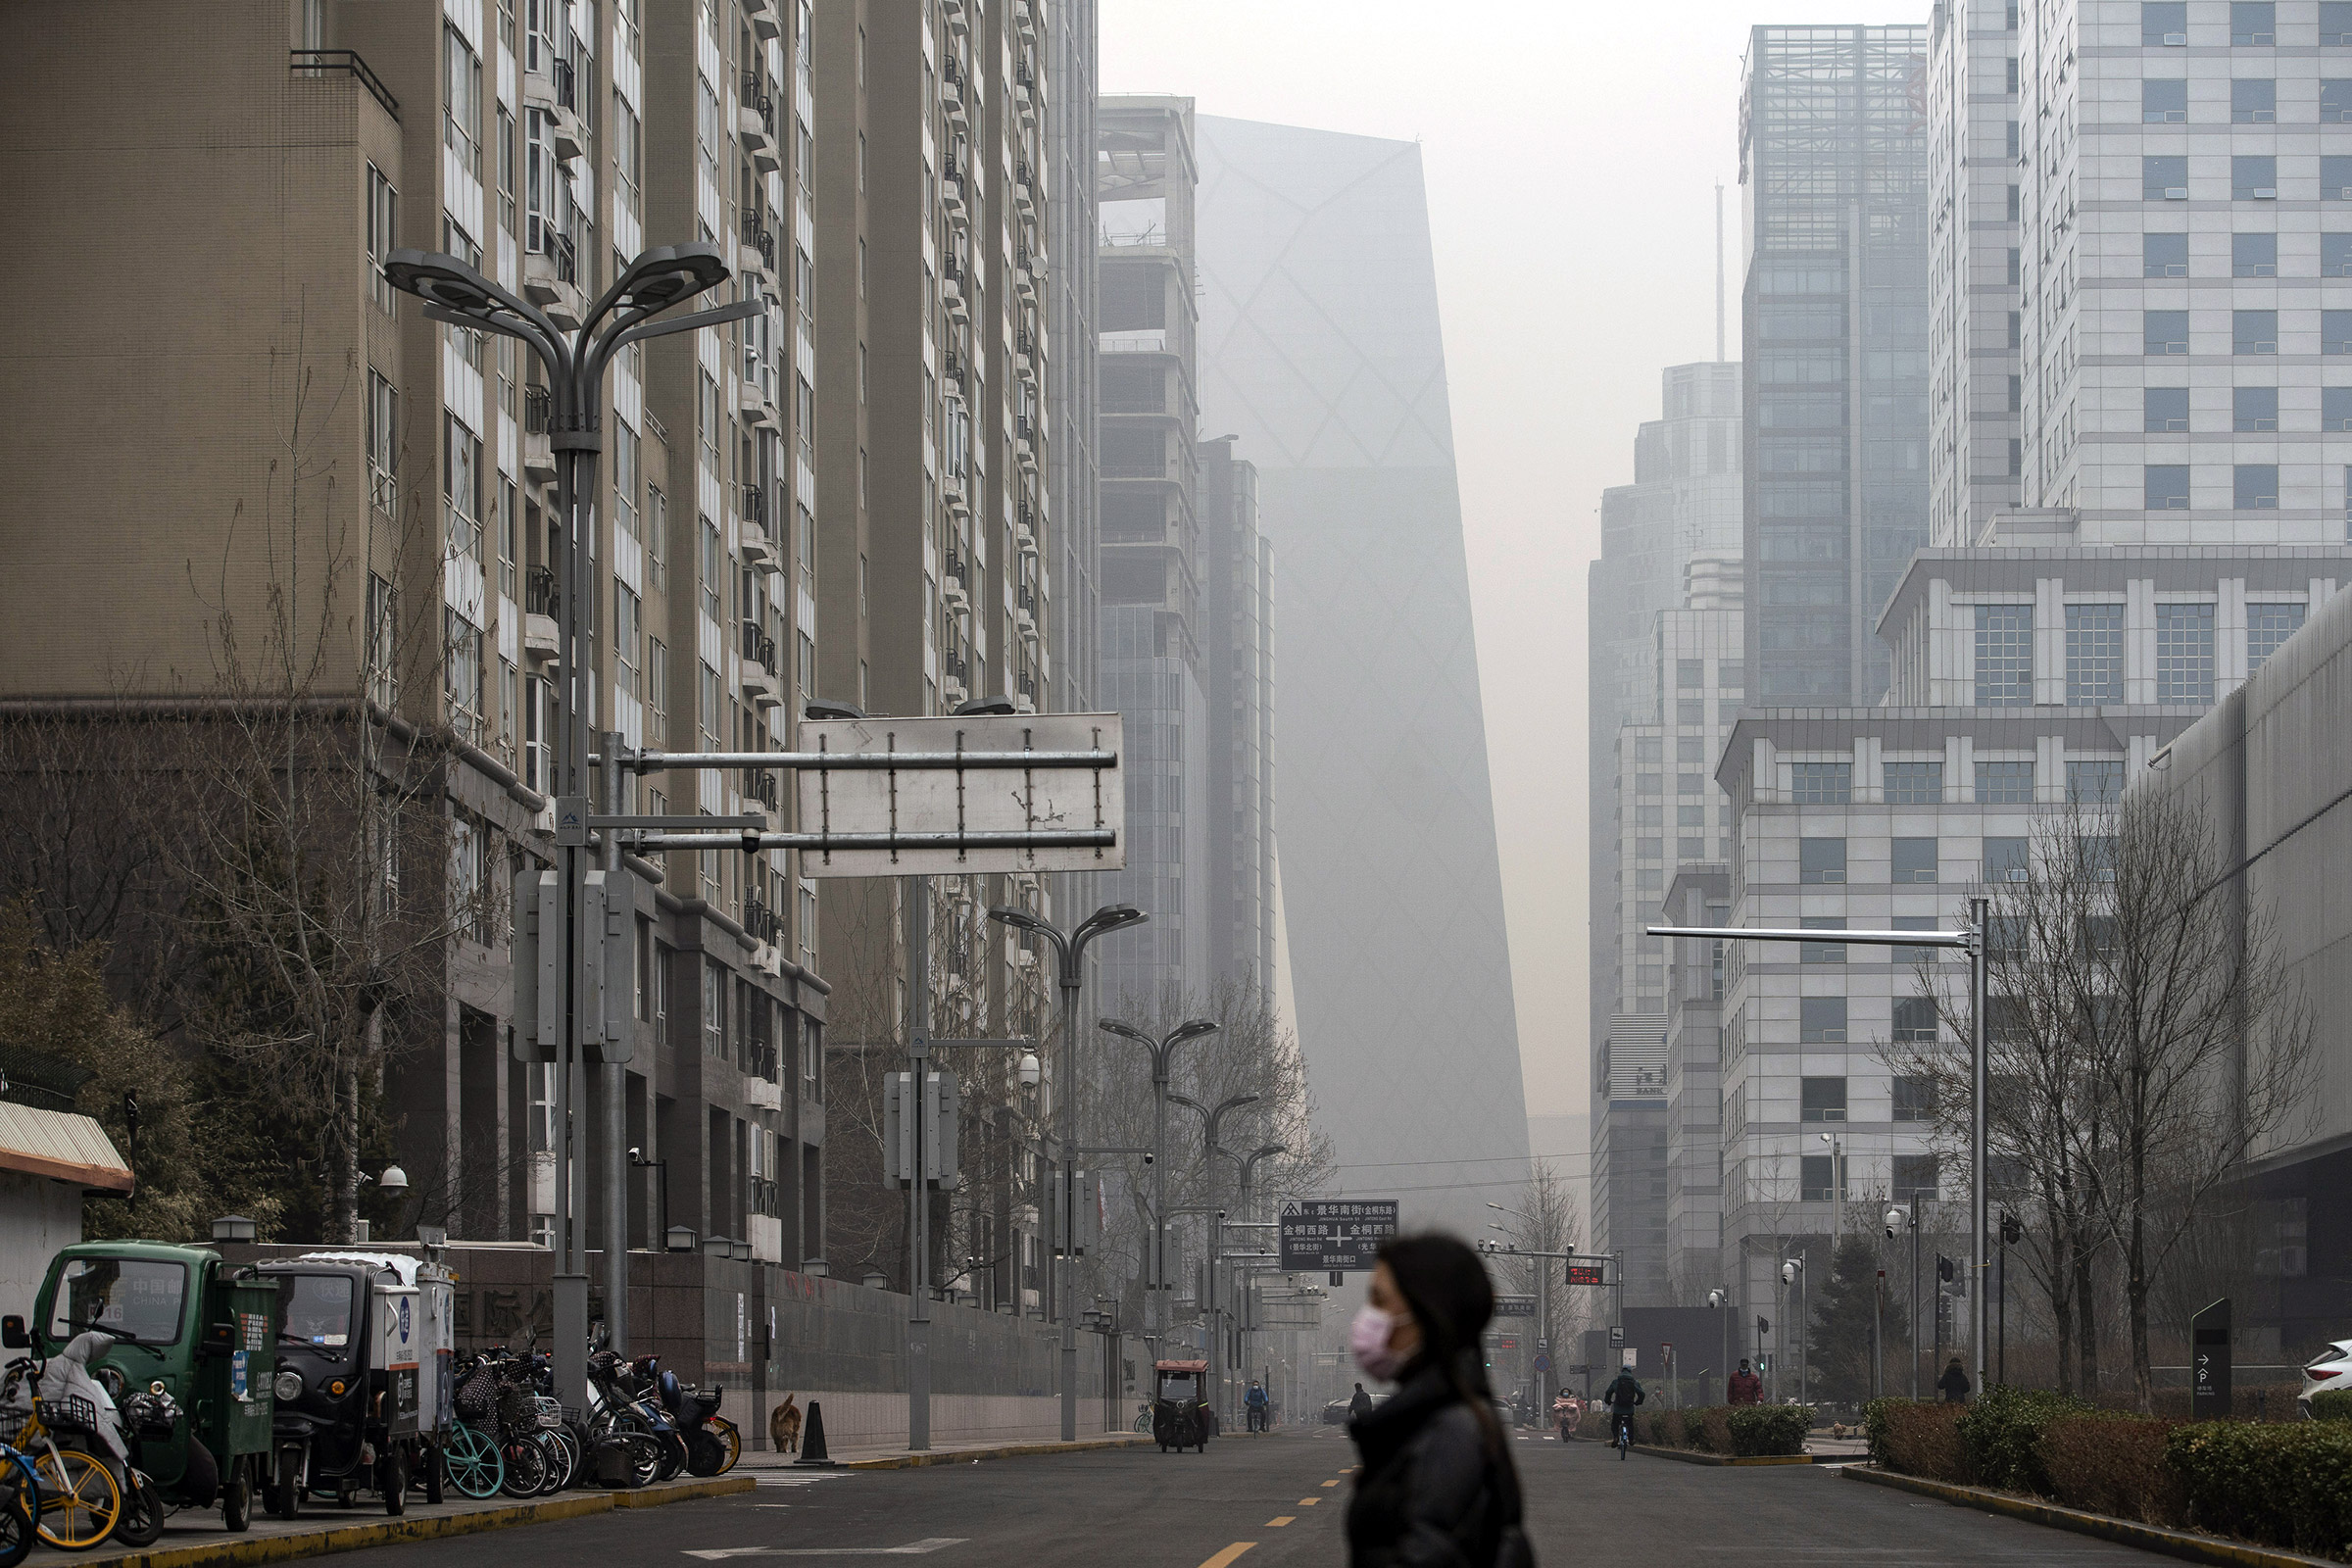 A pedestrian walks in Beijing, shrouded in smog, on March 5, 2021.